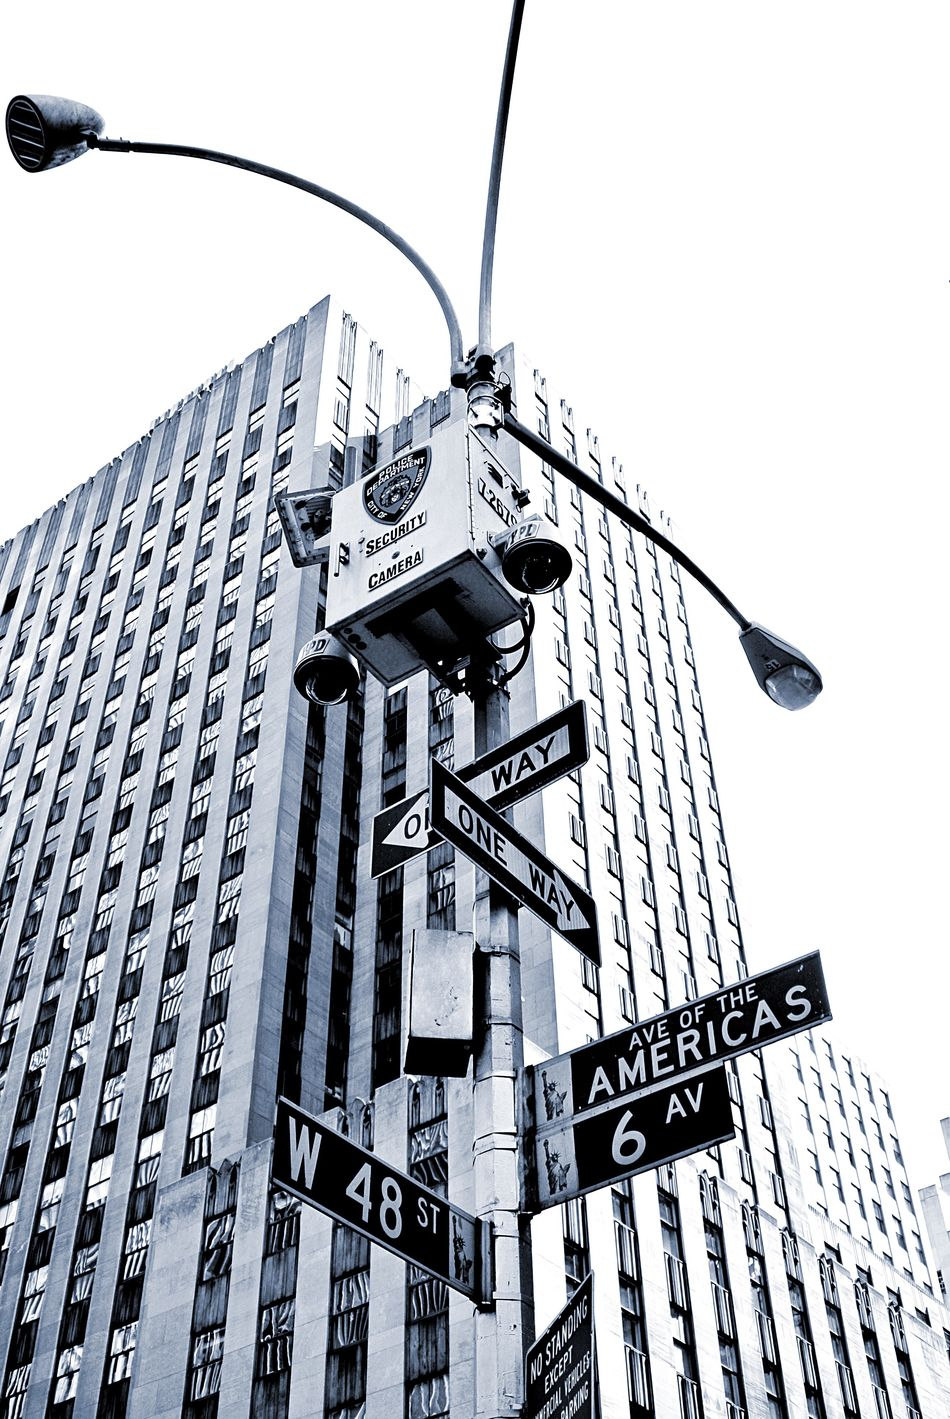 New York New York City NYC Street Photography Sign Road Sign Architecture Security Camera Street Light Urban City City Life Black And White Street Sign Street Signs Securitycam Security Cam Security Camera Safety Cctv Street Signage Road Signs Battle Of The Cities Resist